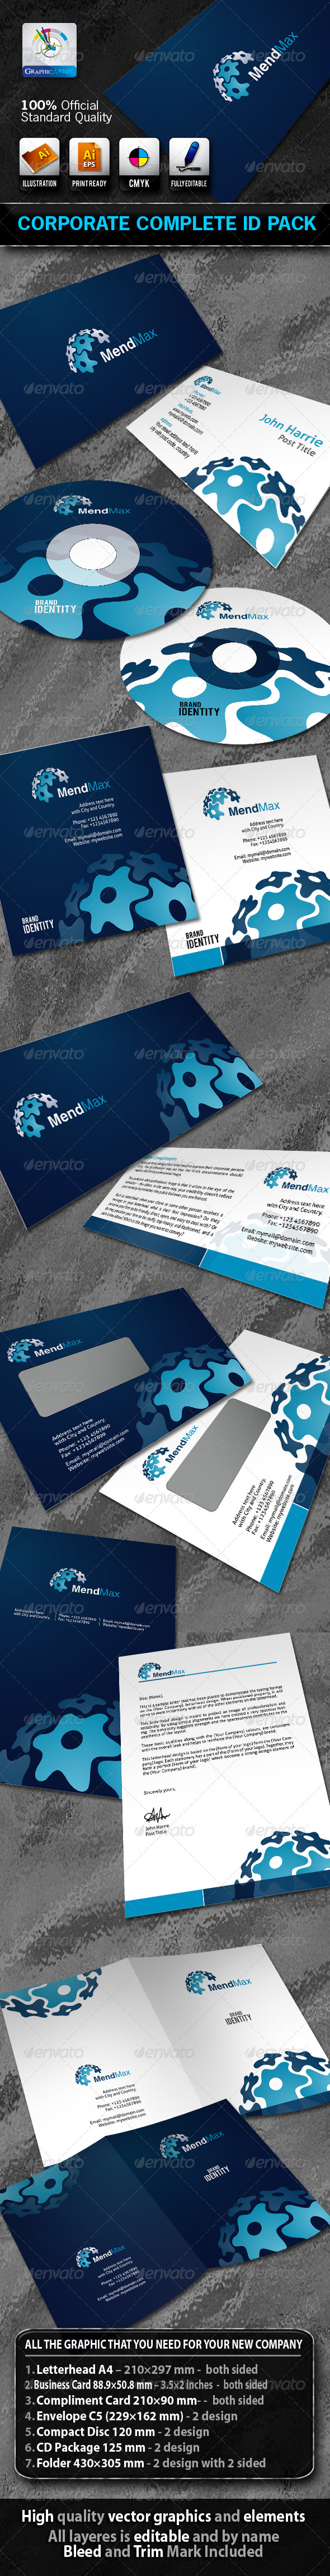 MendMax Business Corporate ID Pack With Logo - Stationery Print Templates